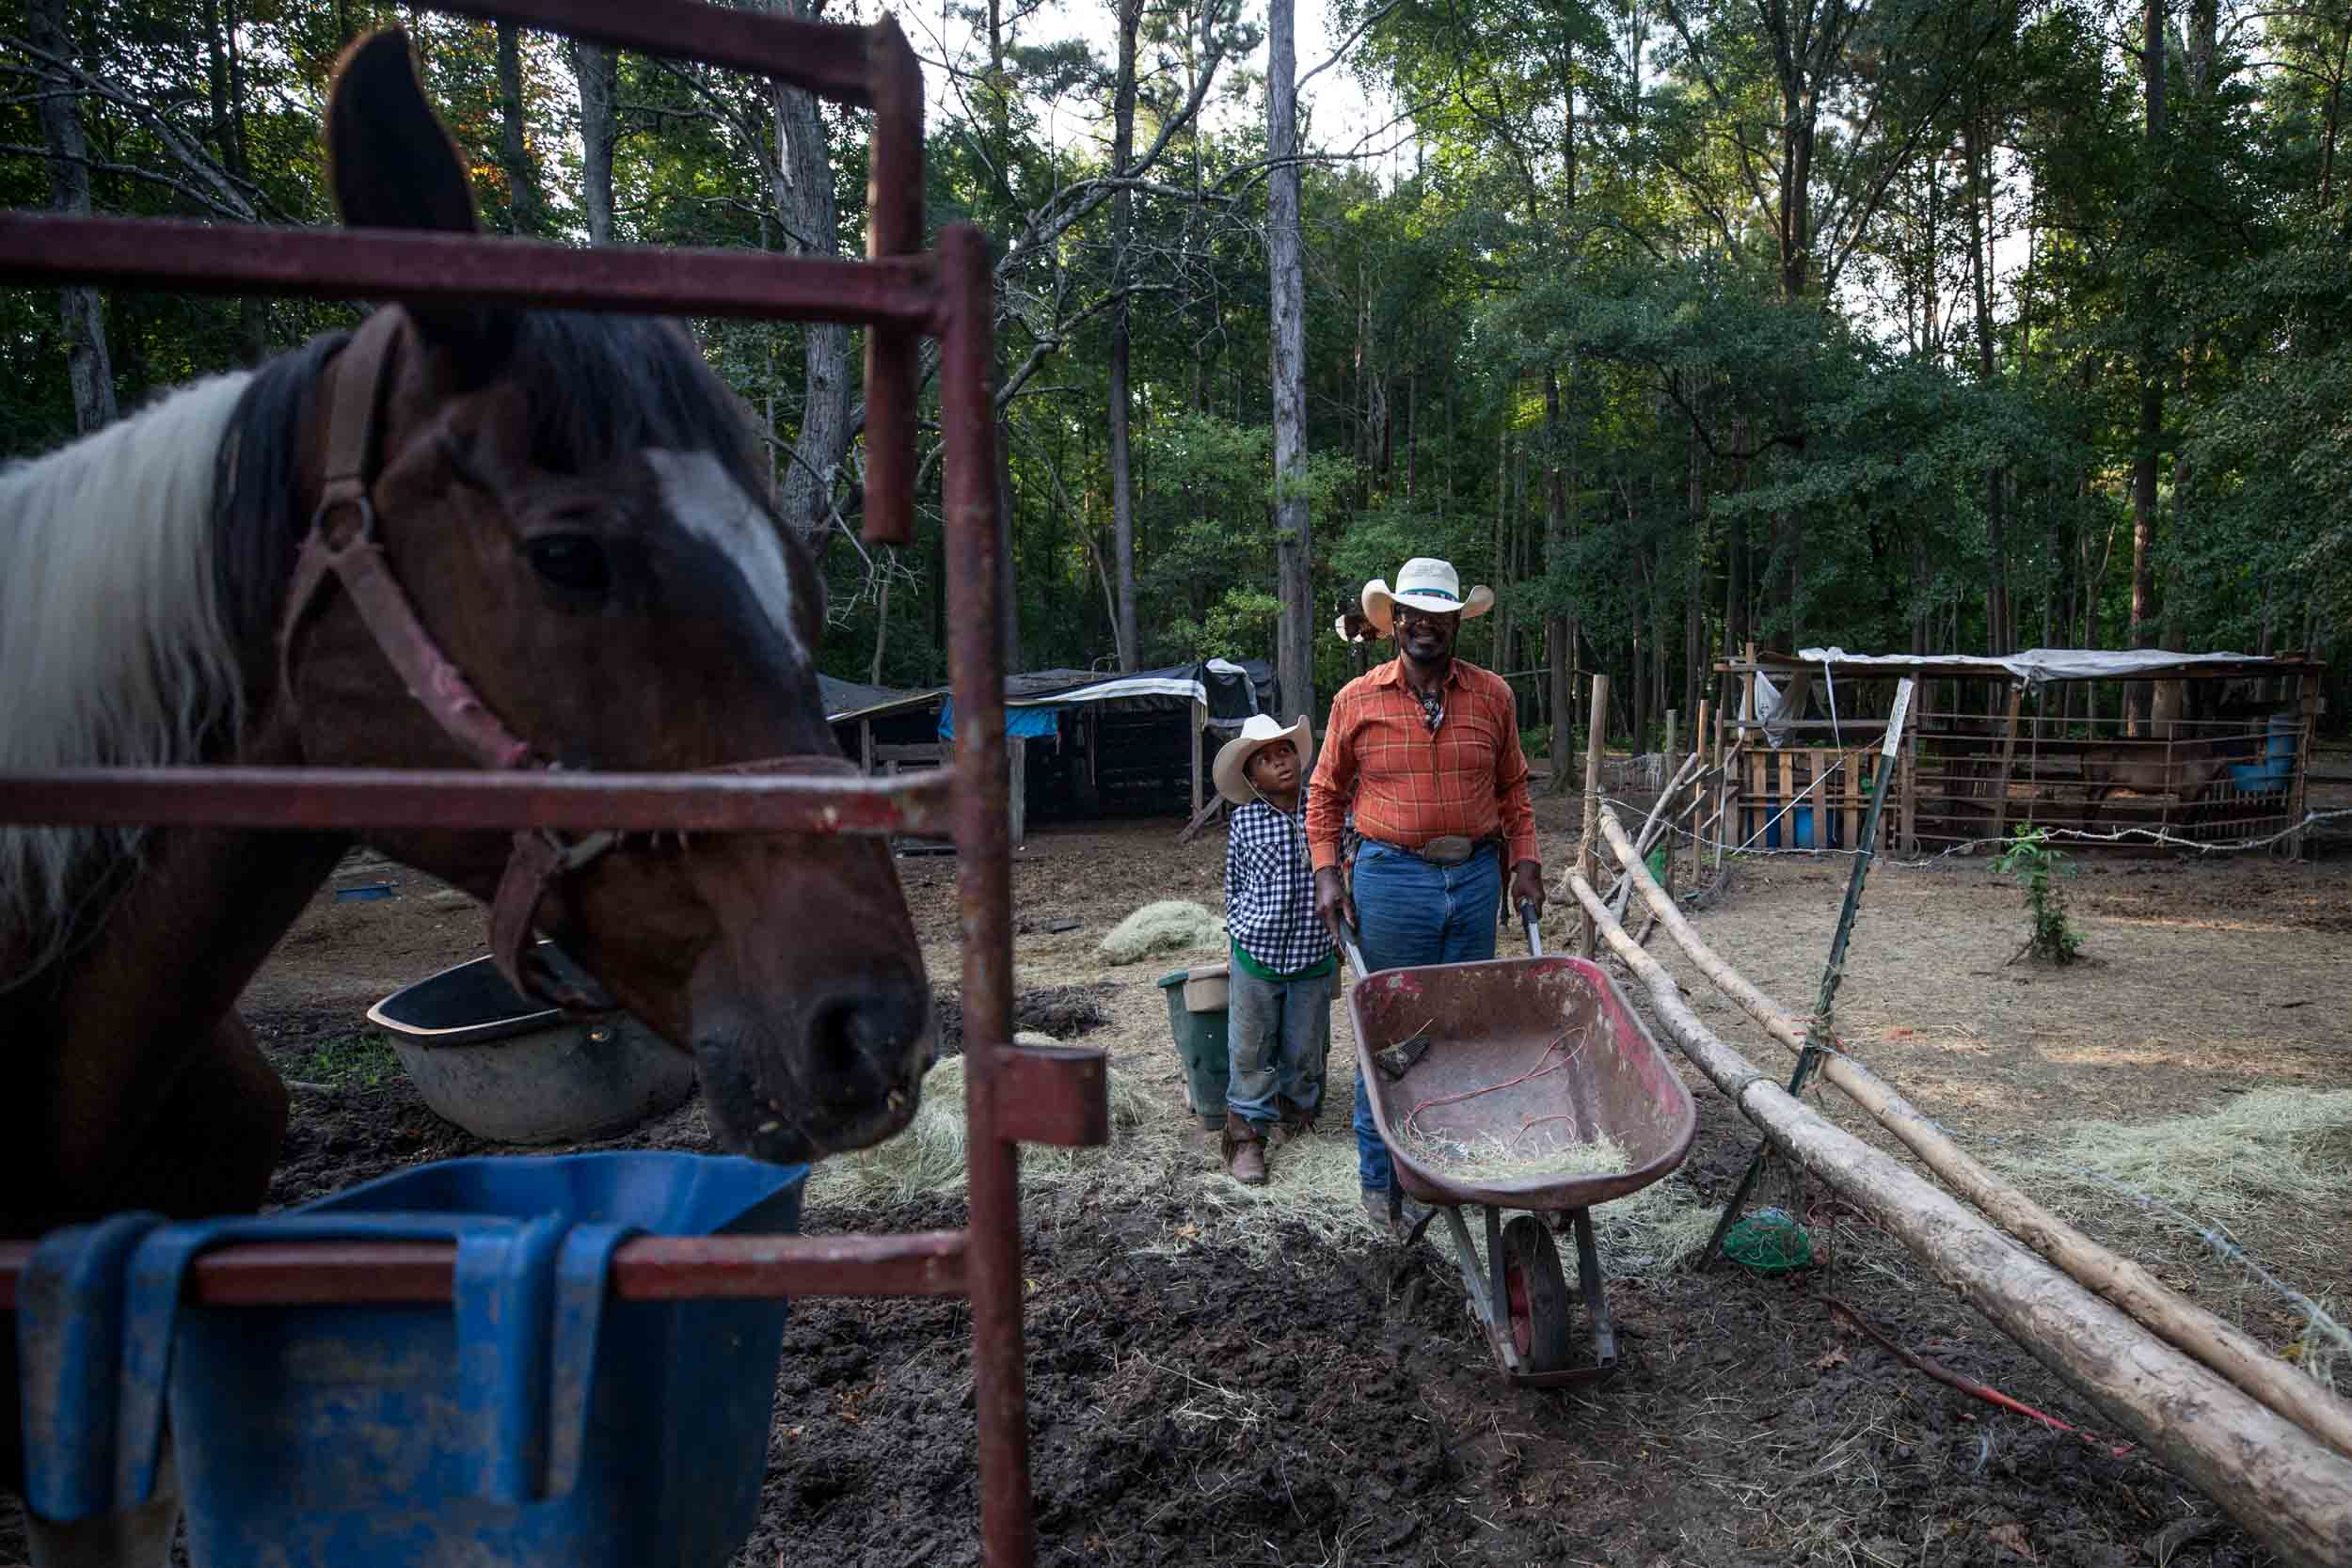 Billy Ray Thunder and his grandson Justin Brown, 11, feed the horses on his ranch off of Flat Shoals Parkway, Tuesday, July 30, 2019, in Union City, Ga. Branden Camp for AJC